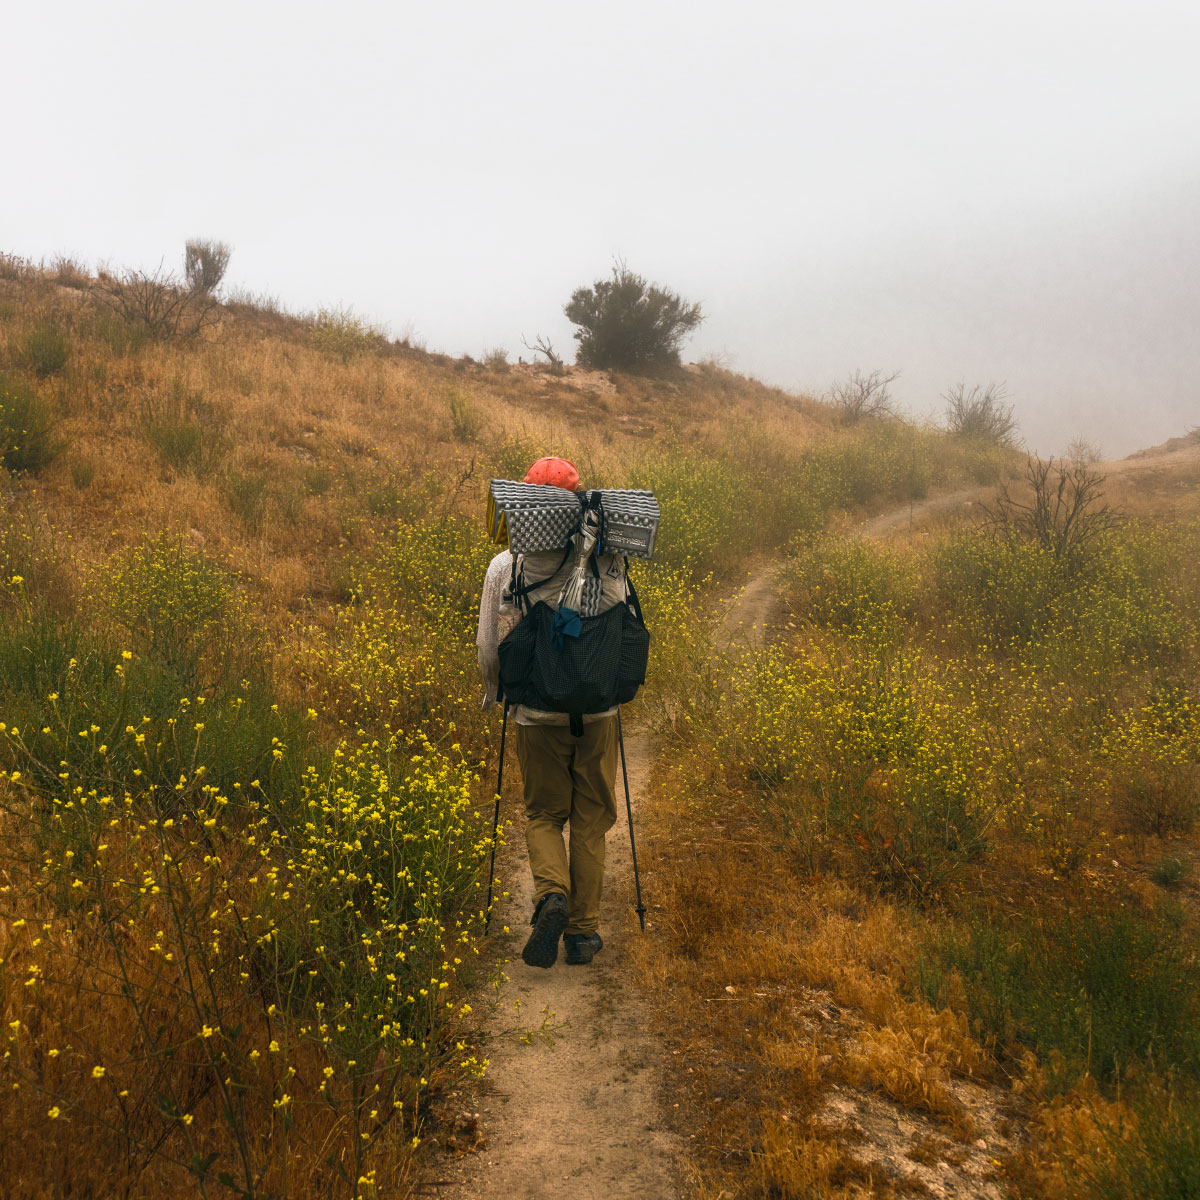 Hiking in the mist towards Cabazon, mile ~363.